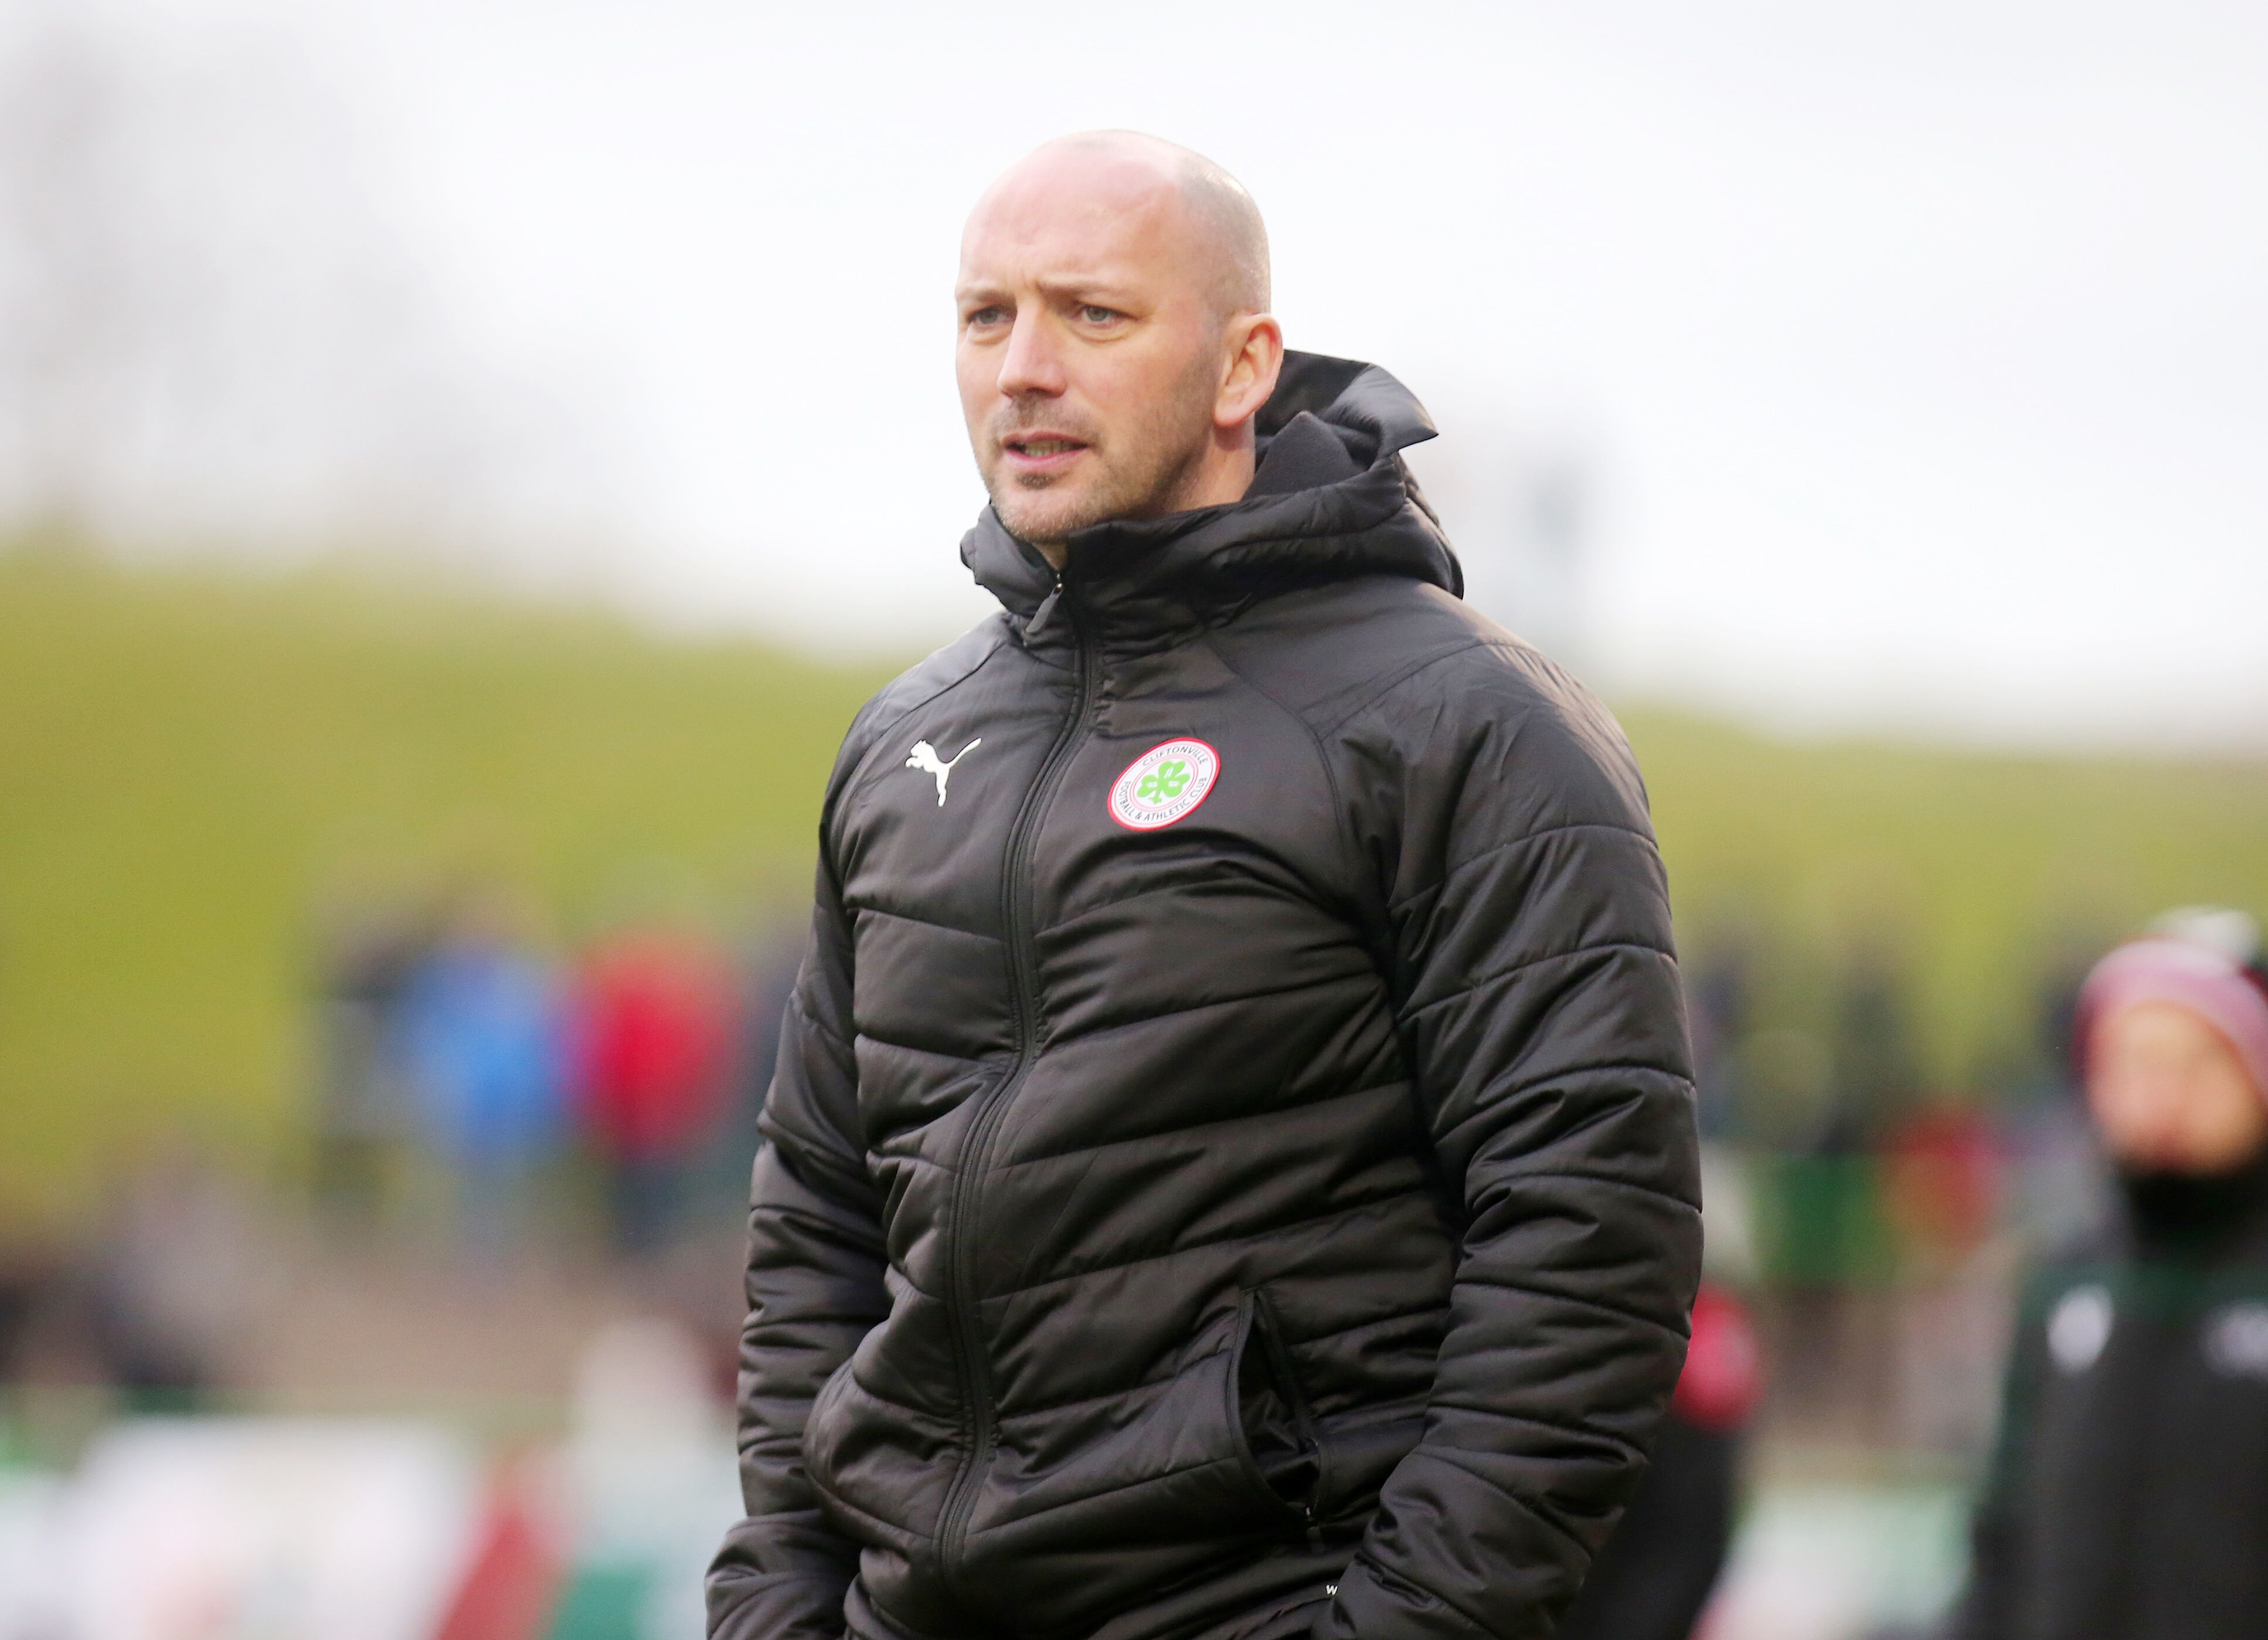 Cliftonville manager Paddy McLaughlin is hopeful that a greater number of fans can attend games in the near future